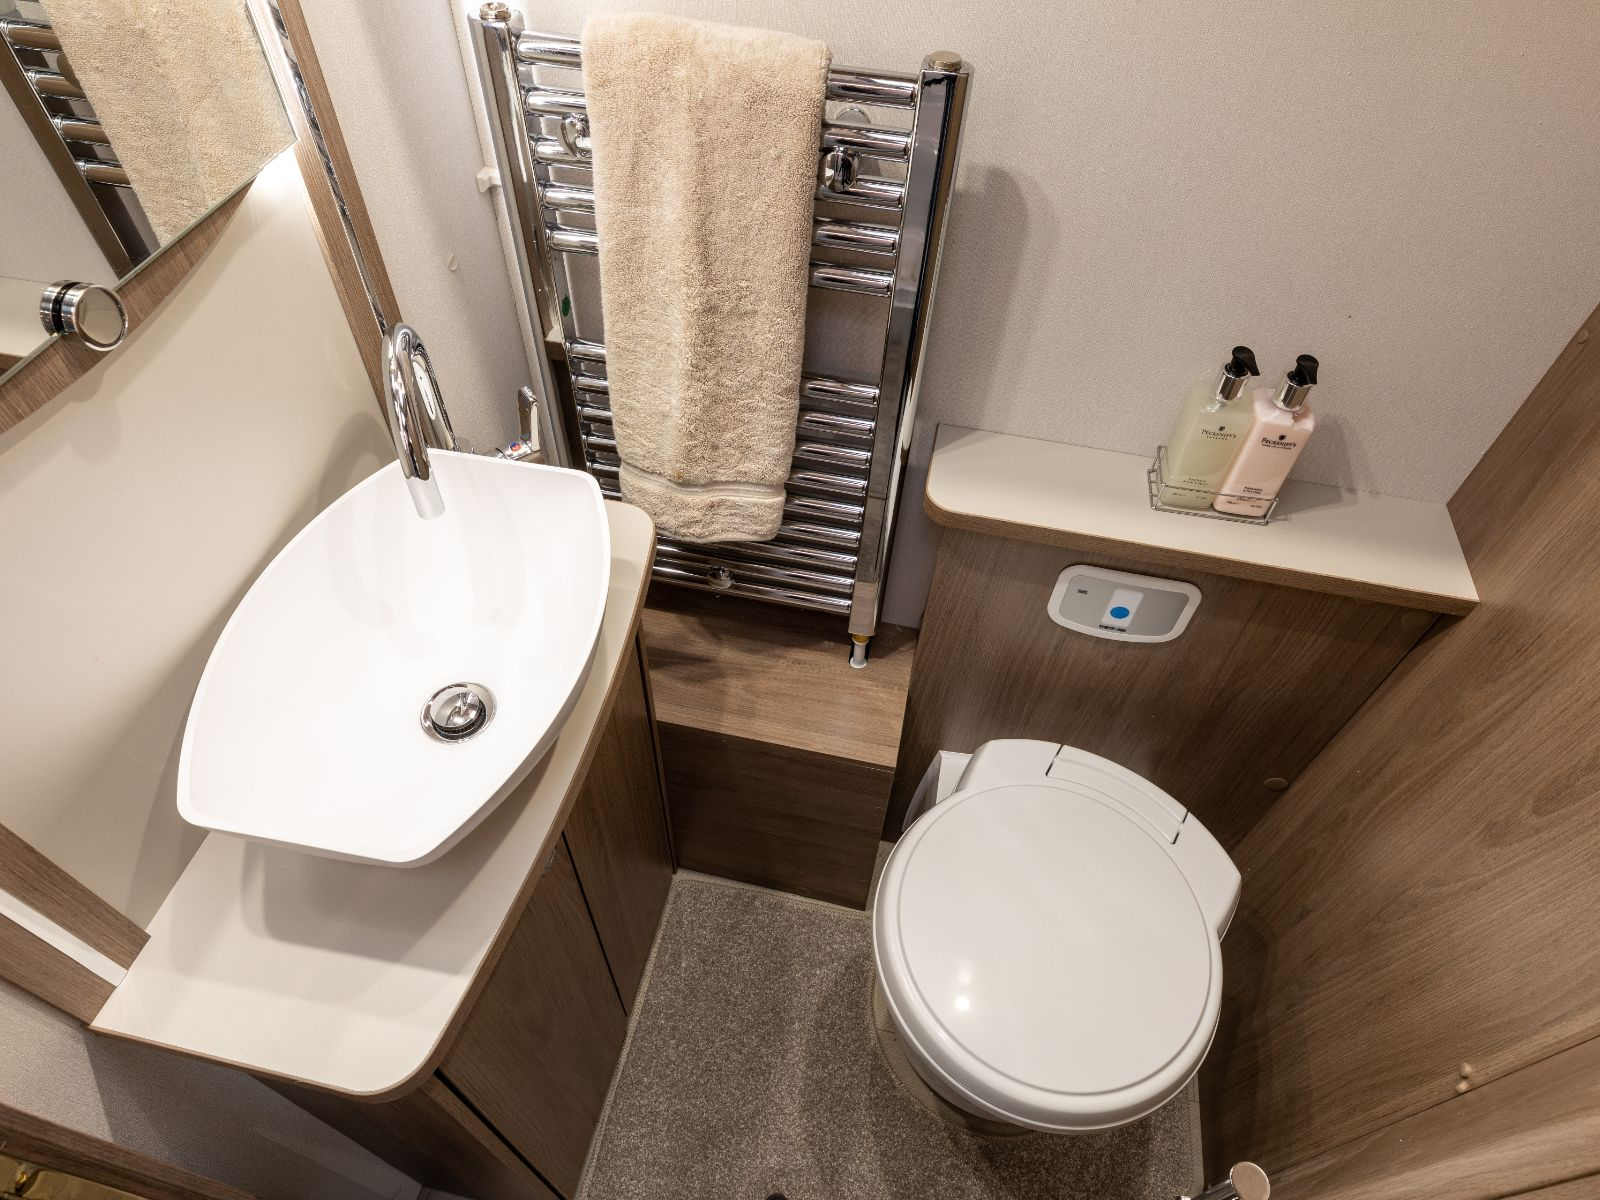 Bathroom layout with sink, mirror, heated towel rack and toilet'